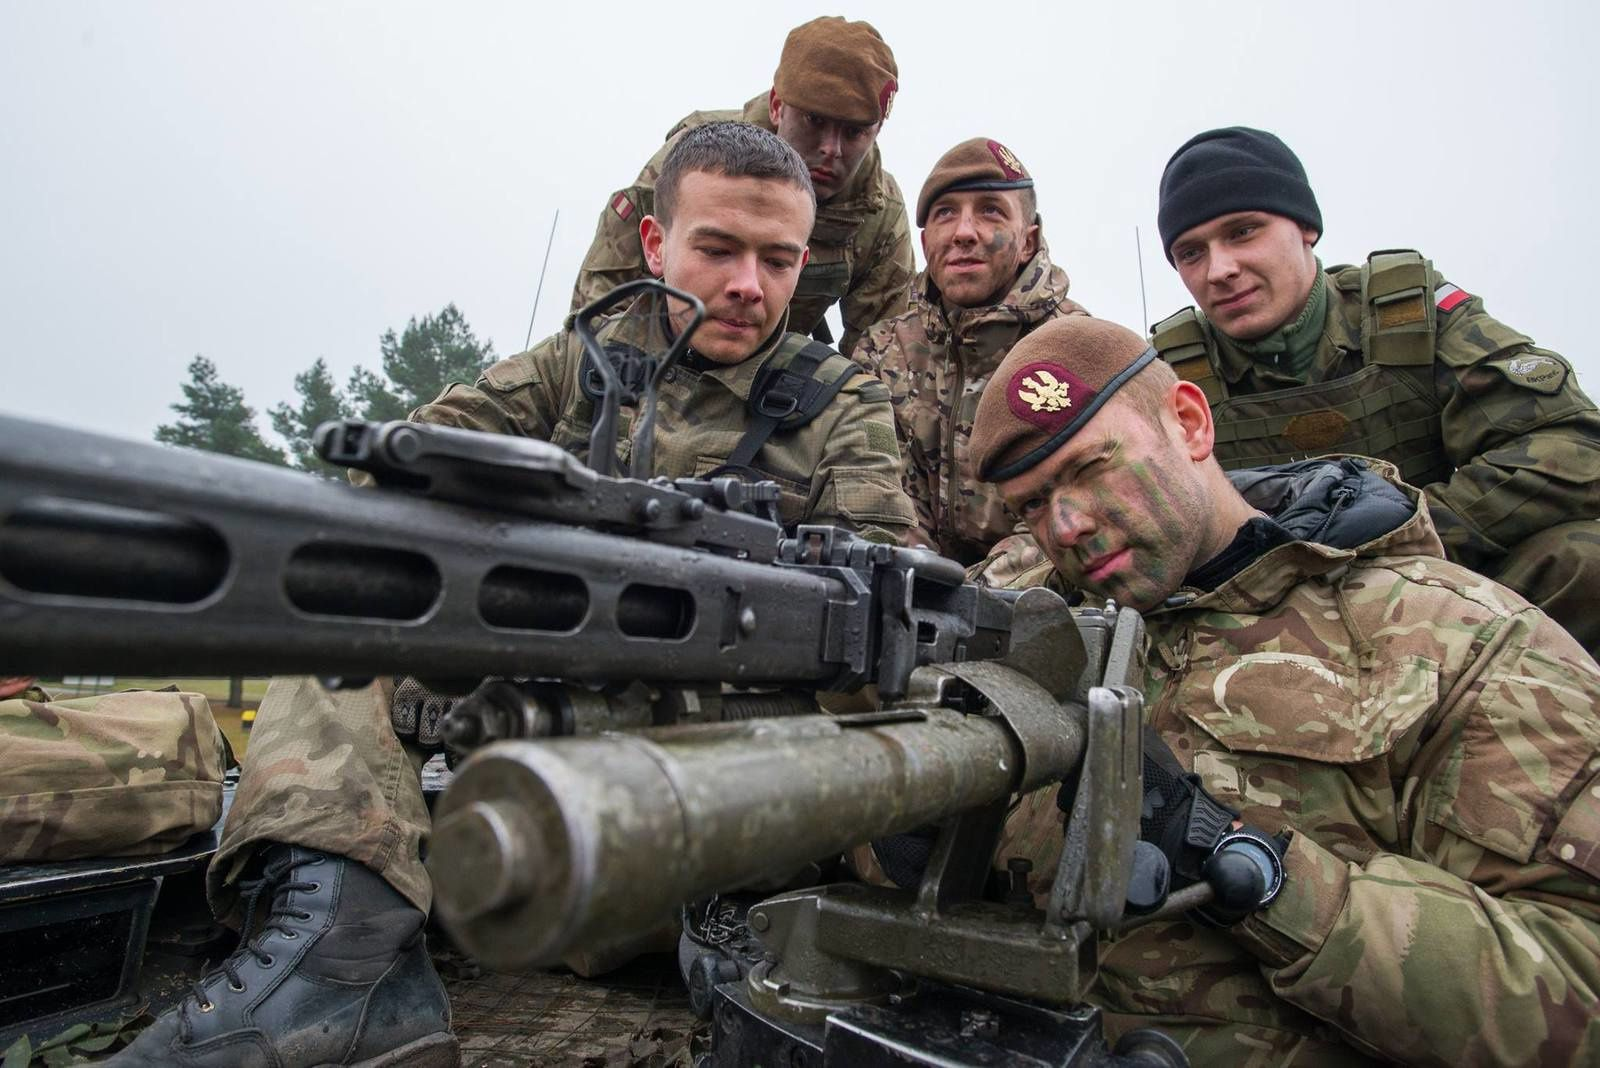 UK troops conduct joint exercise in Poland